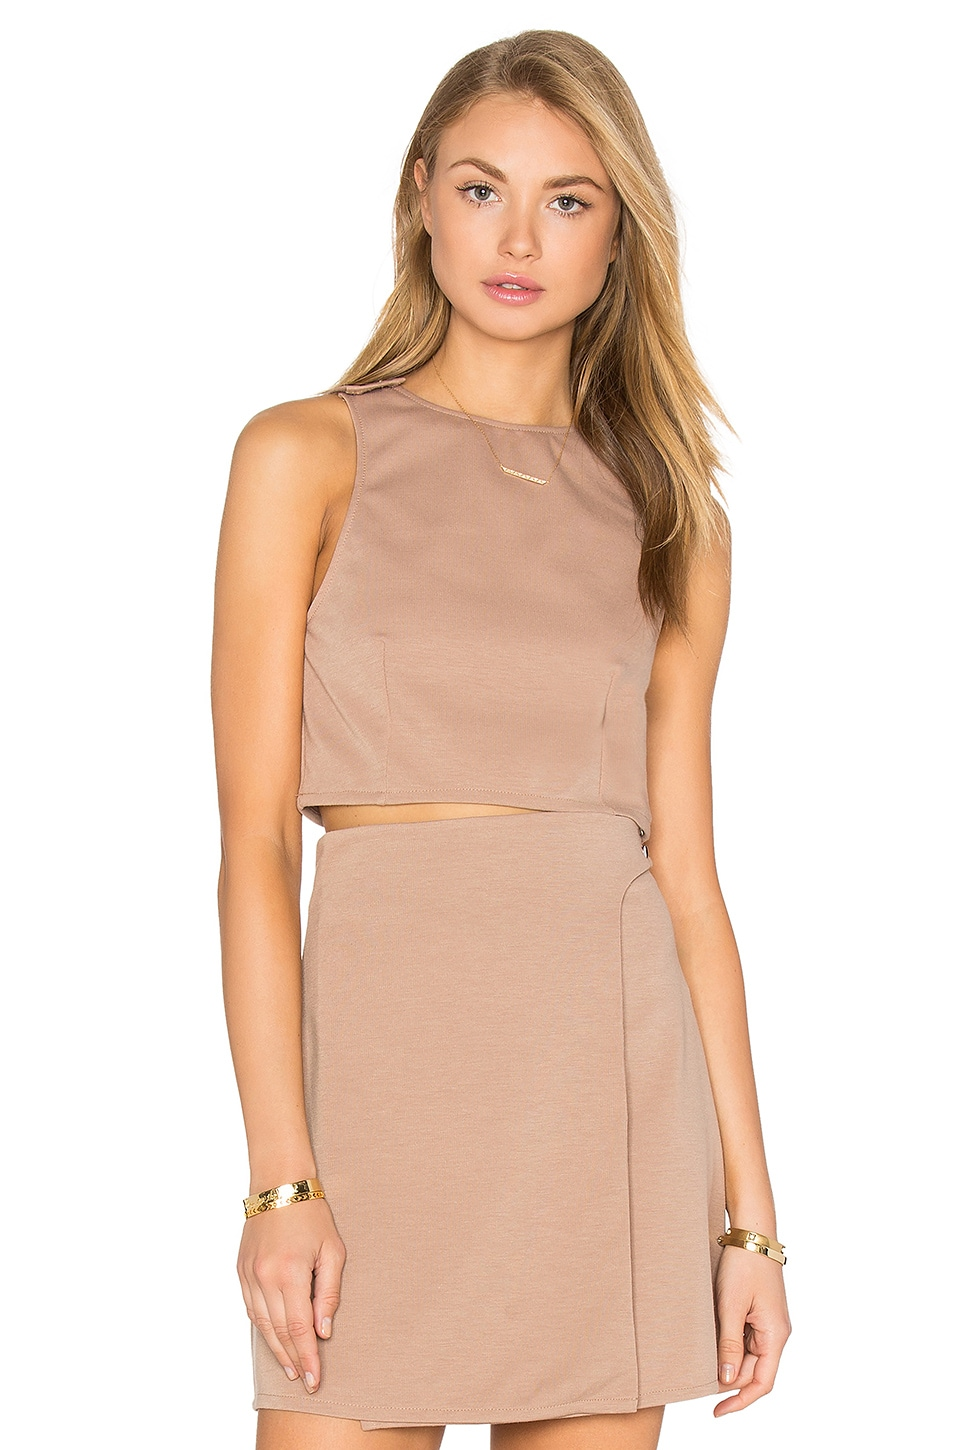 Twin Sister Button Strap Crop Top in Nude